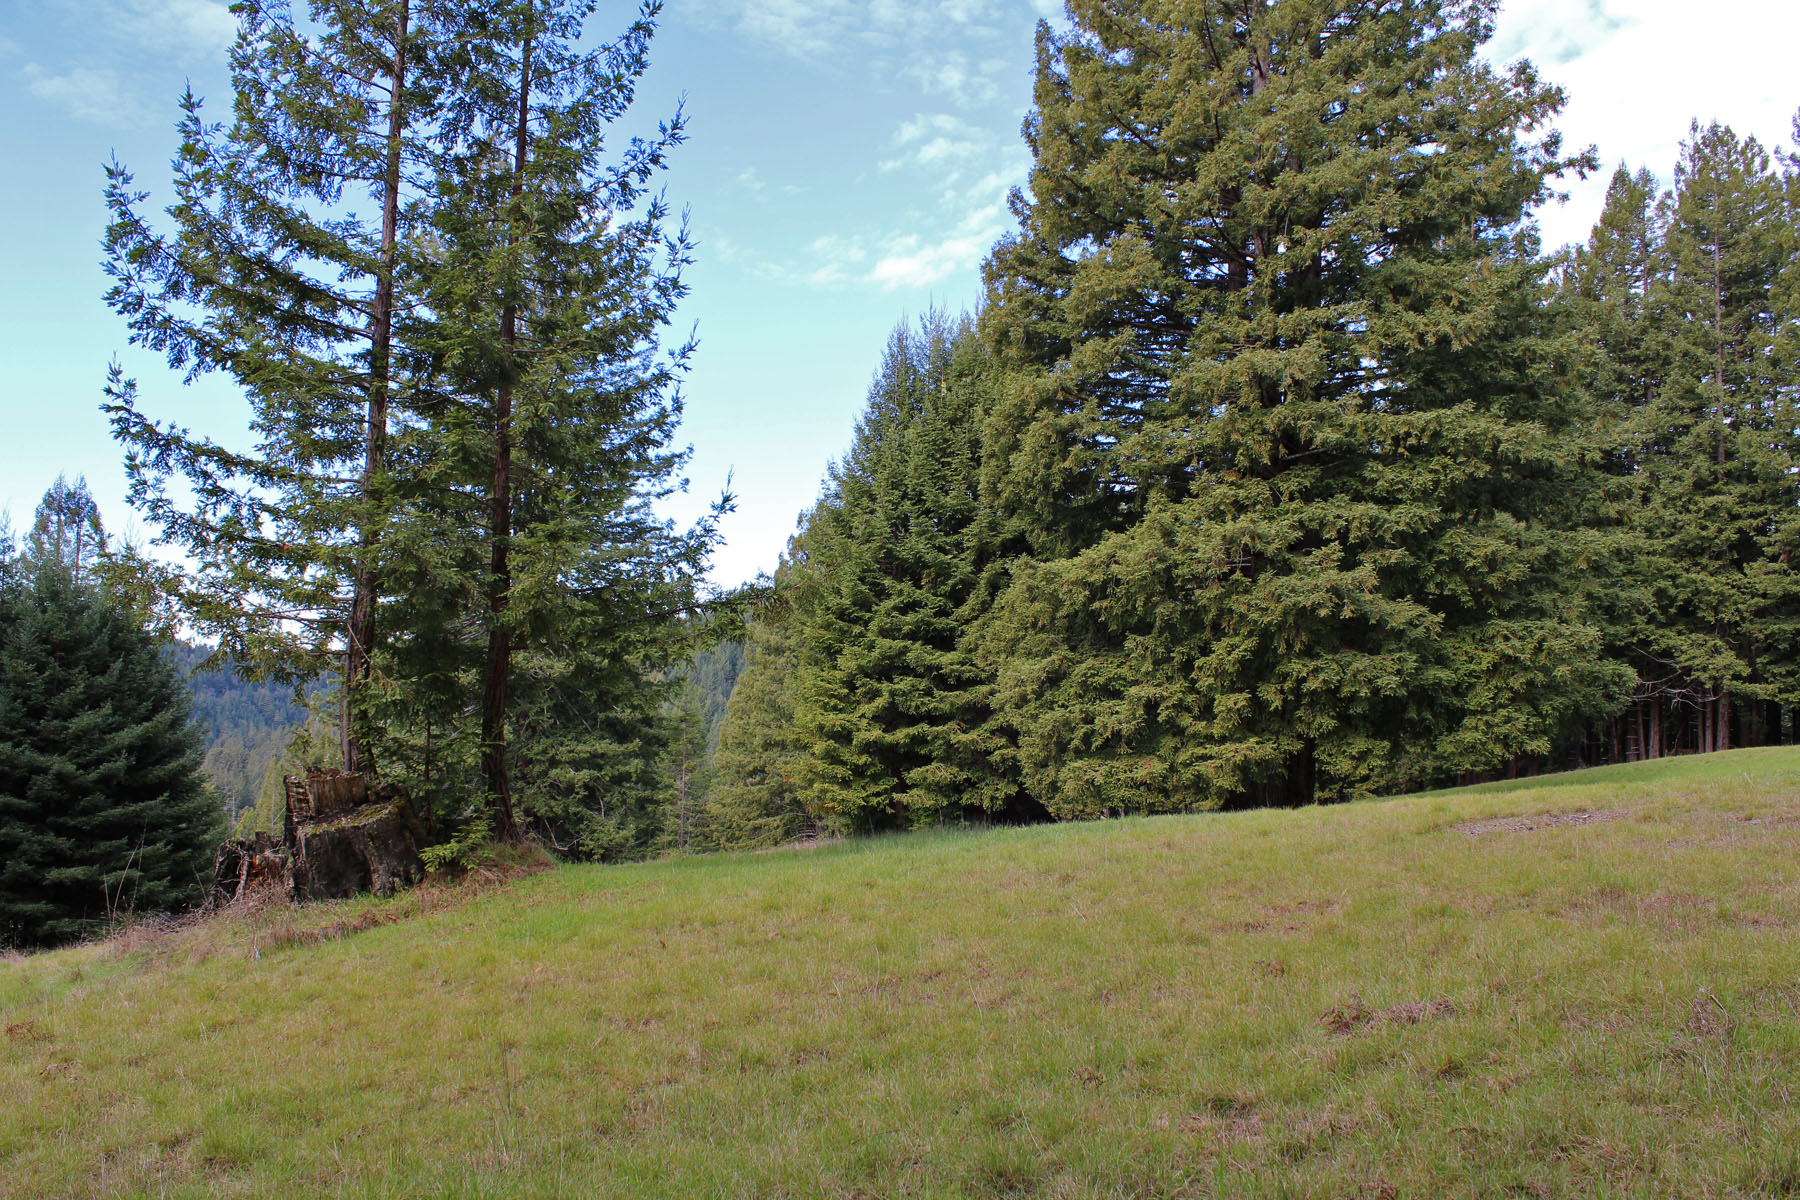 Additional photo for property listing at Two Parcels, Timberland & a Place to Stay 25270 Company Ranch Road Fort Bragg, California 95437 United States